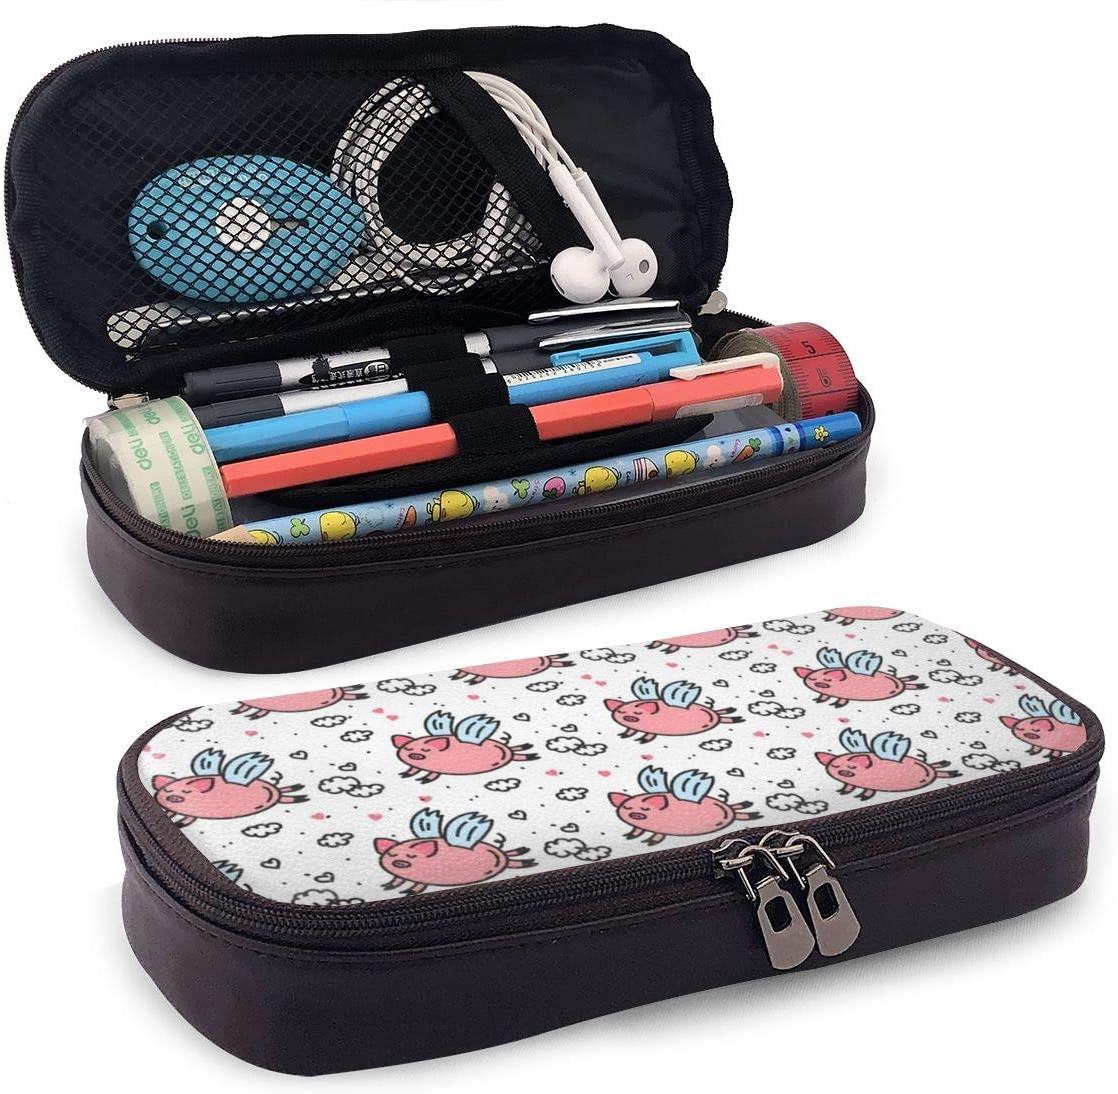 Flying Pigs Pattern. Big Capacity Double Zipper Storage Pouch Organizer Bag